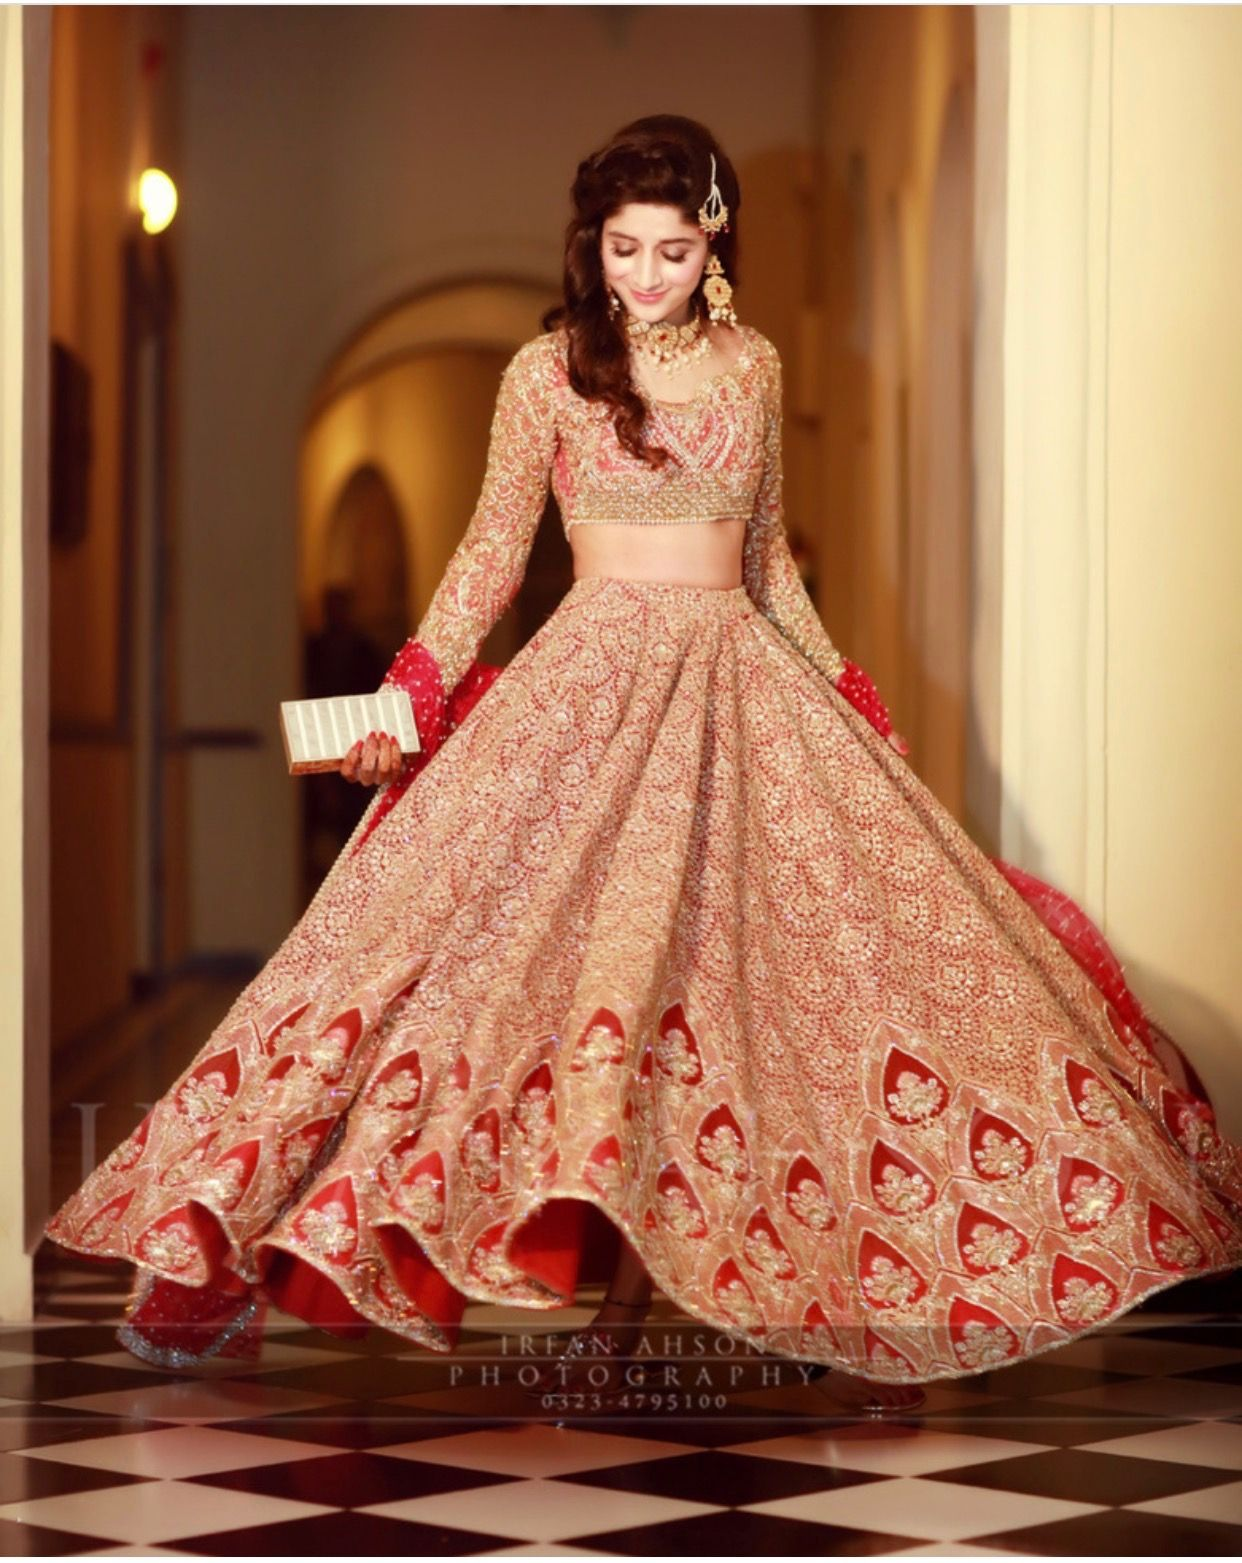 Kaimzz look | Fashion Africa | Wedding dresses, Indian ...